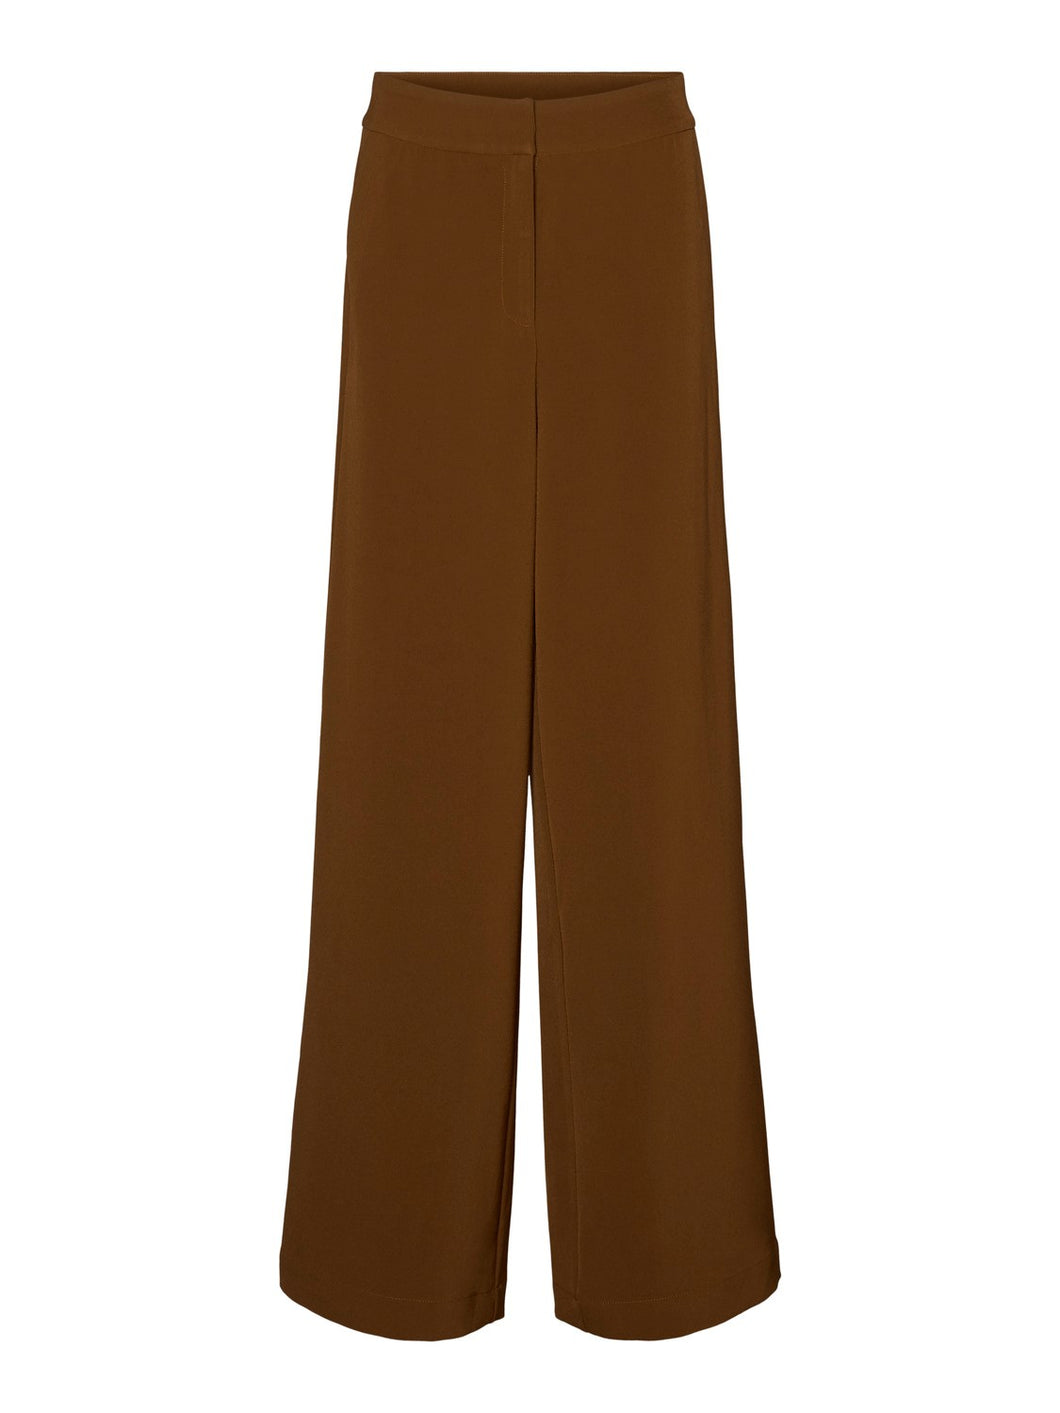 Cameron High Waisted Wide Leg Trousers - Brown